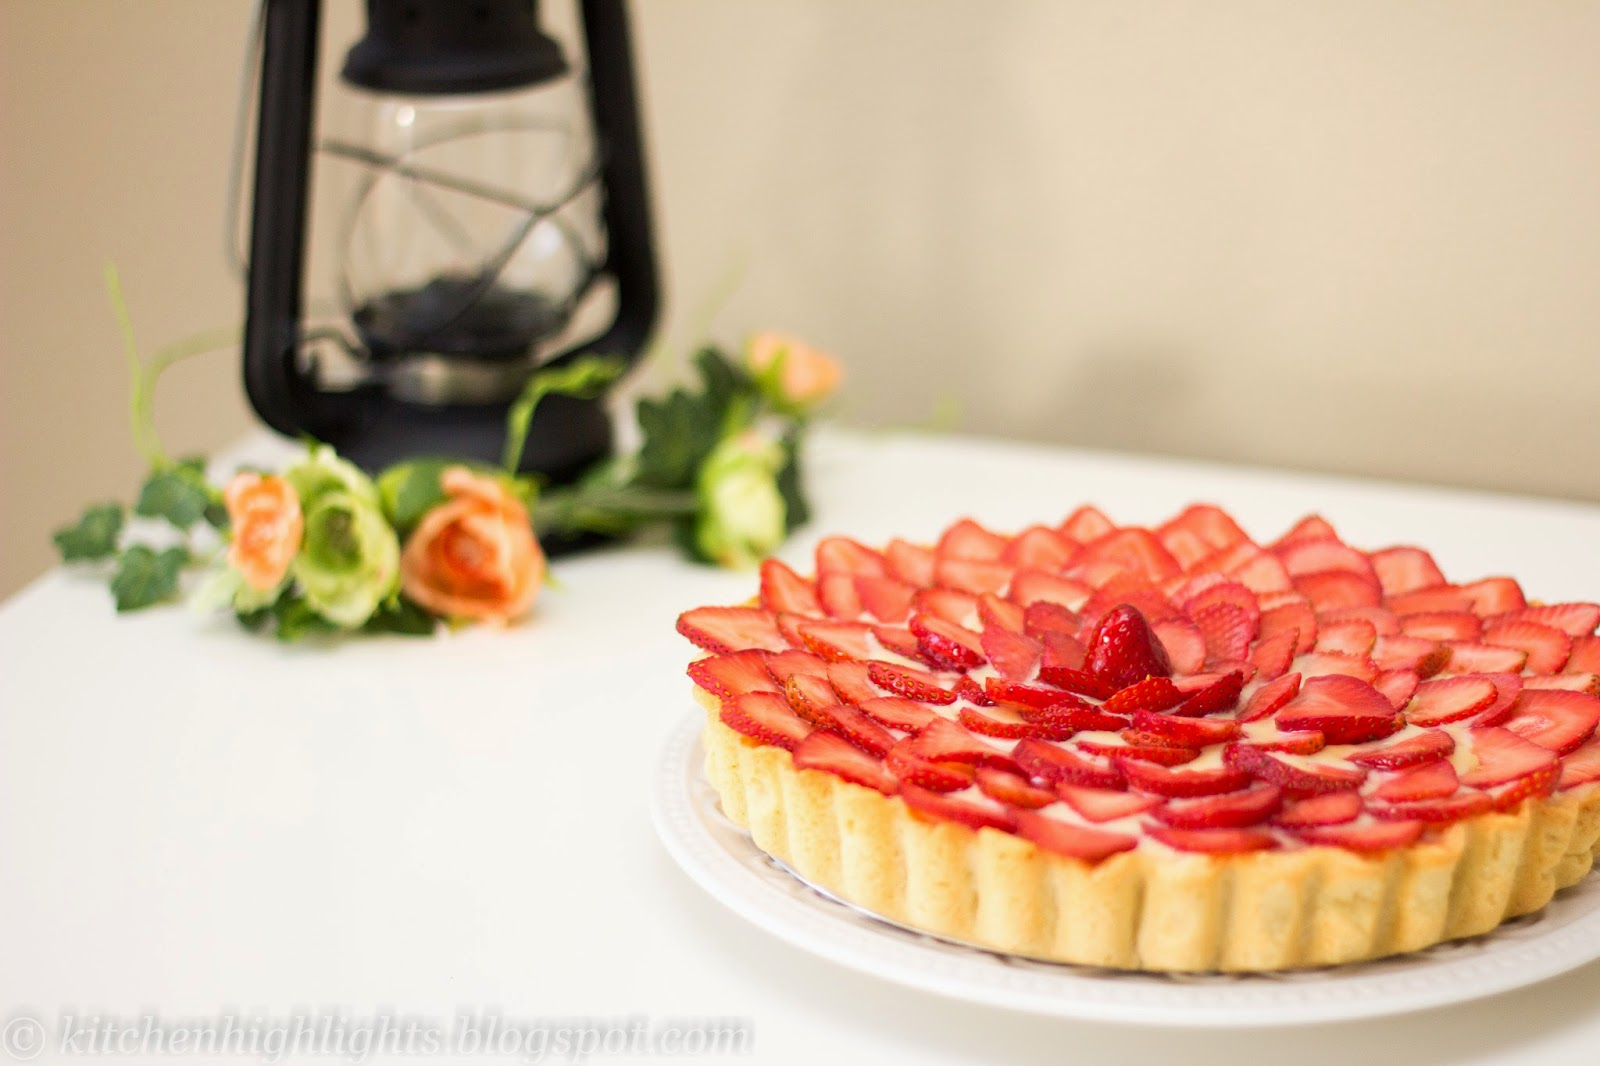 This tart is delicious and elegant and can be served to a lovely dinner party and sure to impress